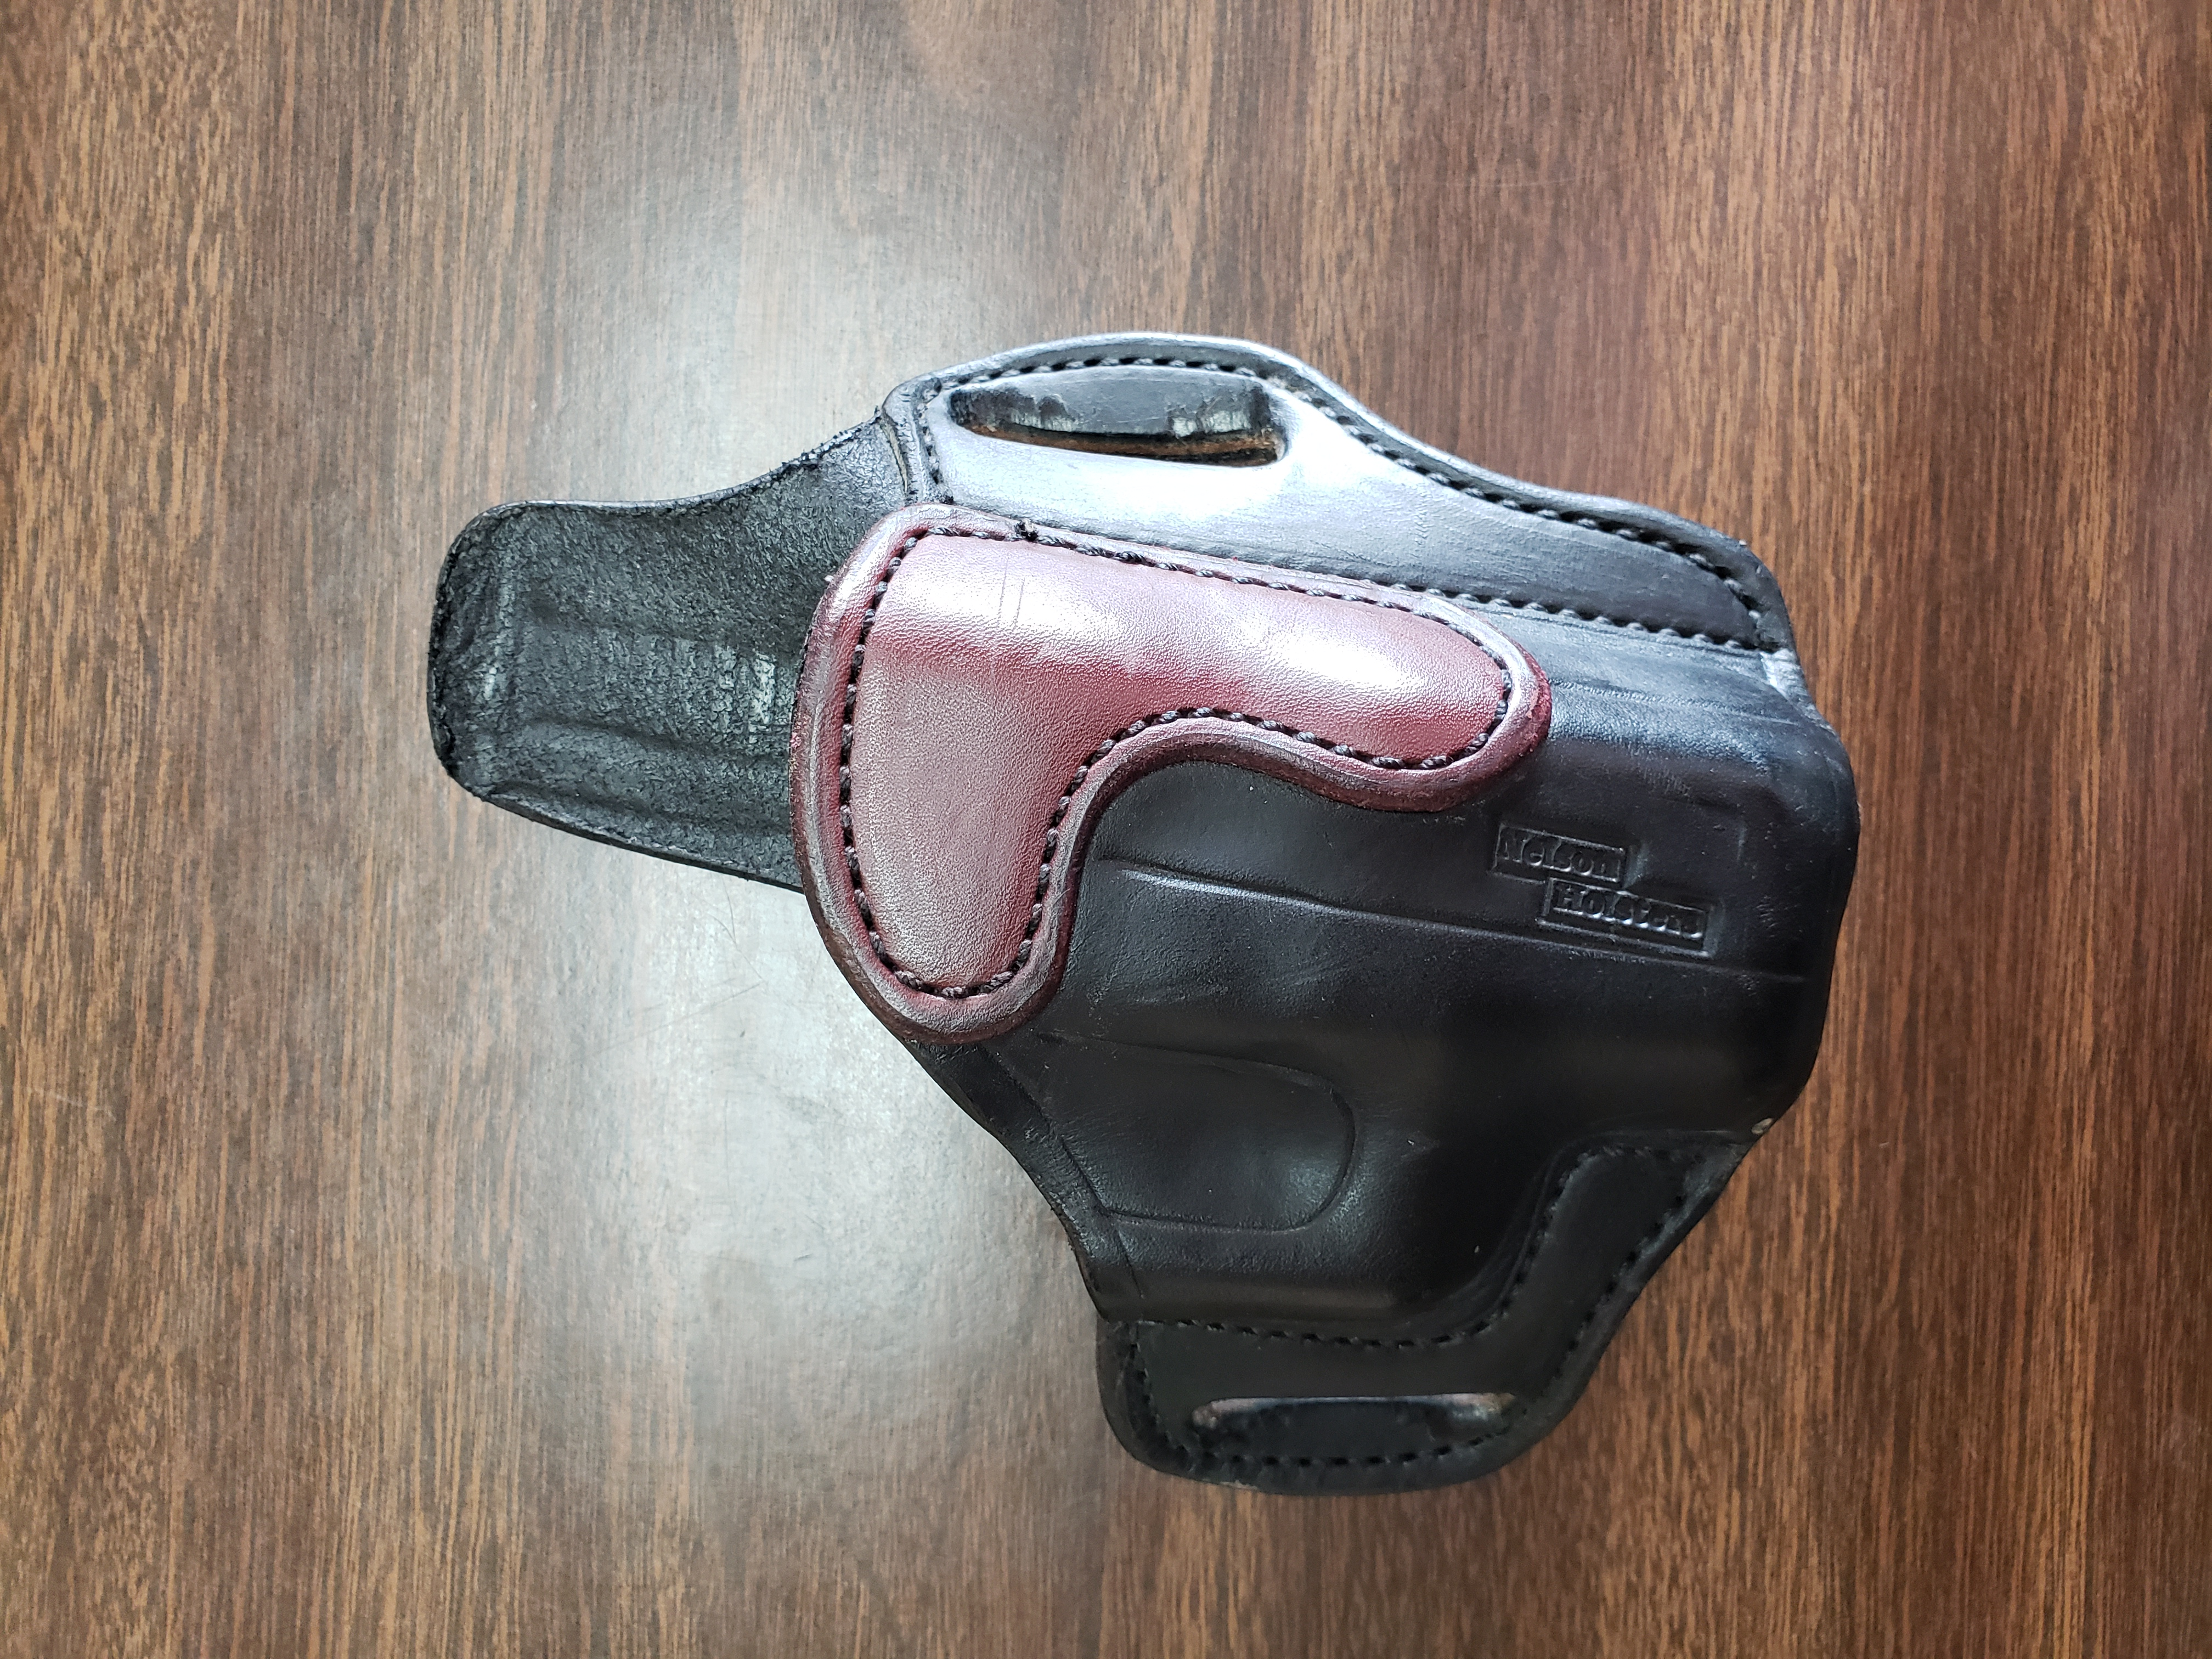 WTS Nelson Leather Glock 26 Holsters-20180926_111457_1537978822636.jpg